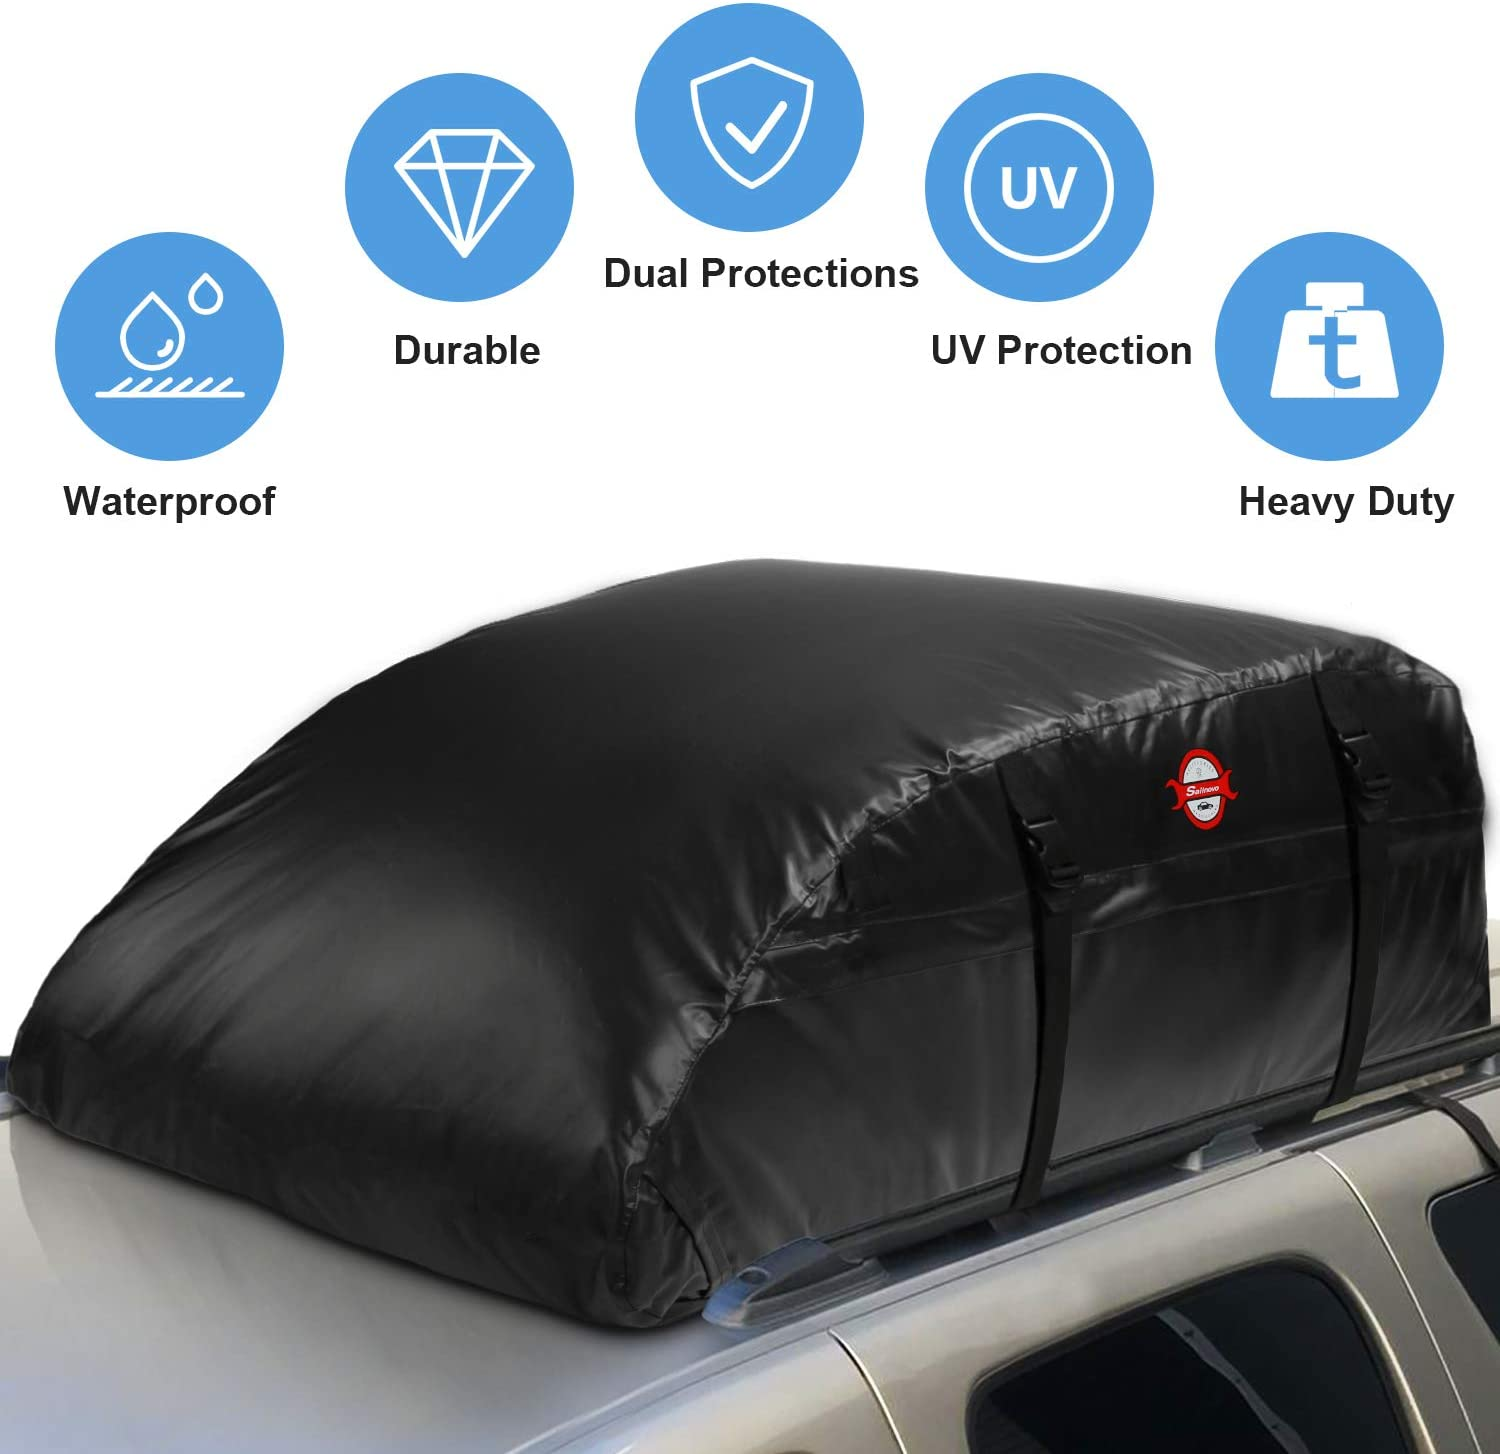 Car Top Bag,Roof Bag Cargo Carrier,Waterproof Auto Luggage Topper Rooftop Bag for Car with//without Rack,Universal Vehicles Roof Storage Bag for Jeep SUV Toyota Subaru with Protective Mat,15 Cubic Feet